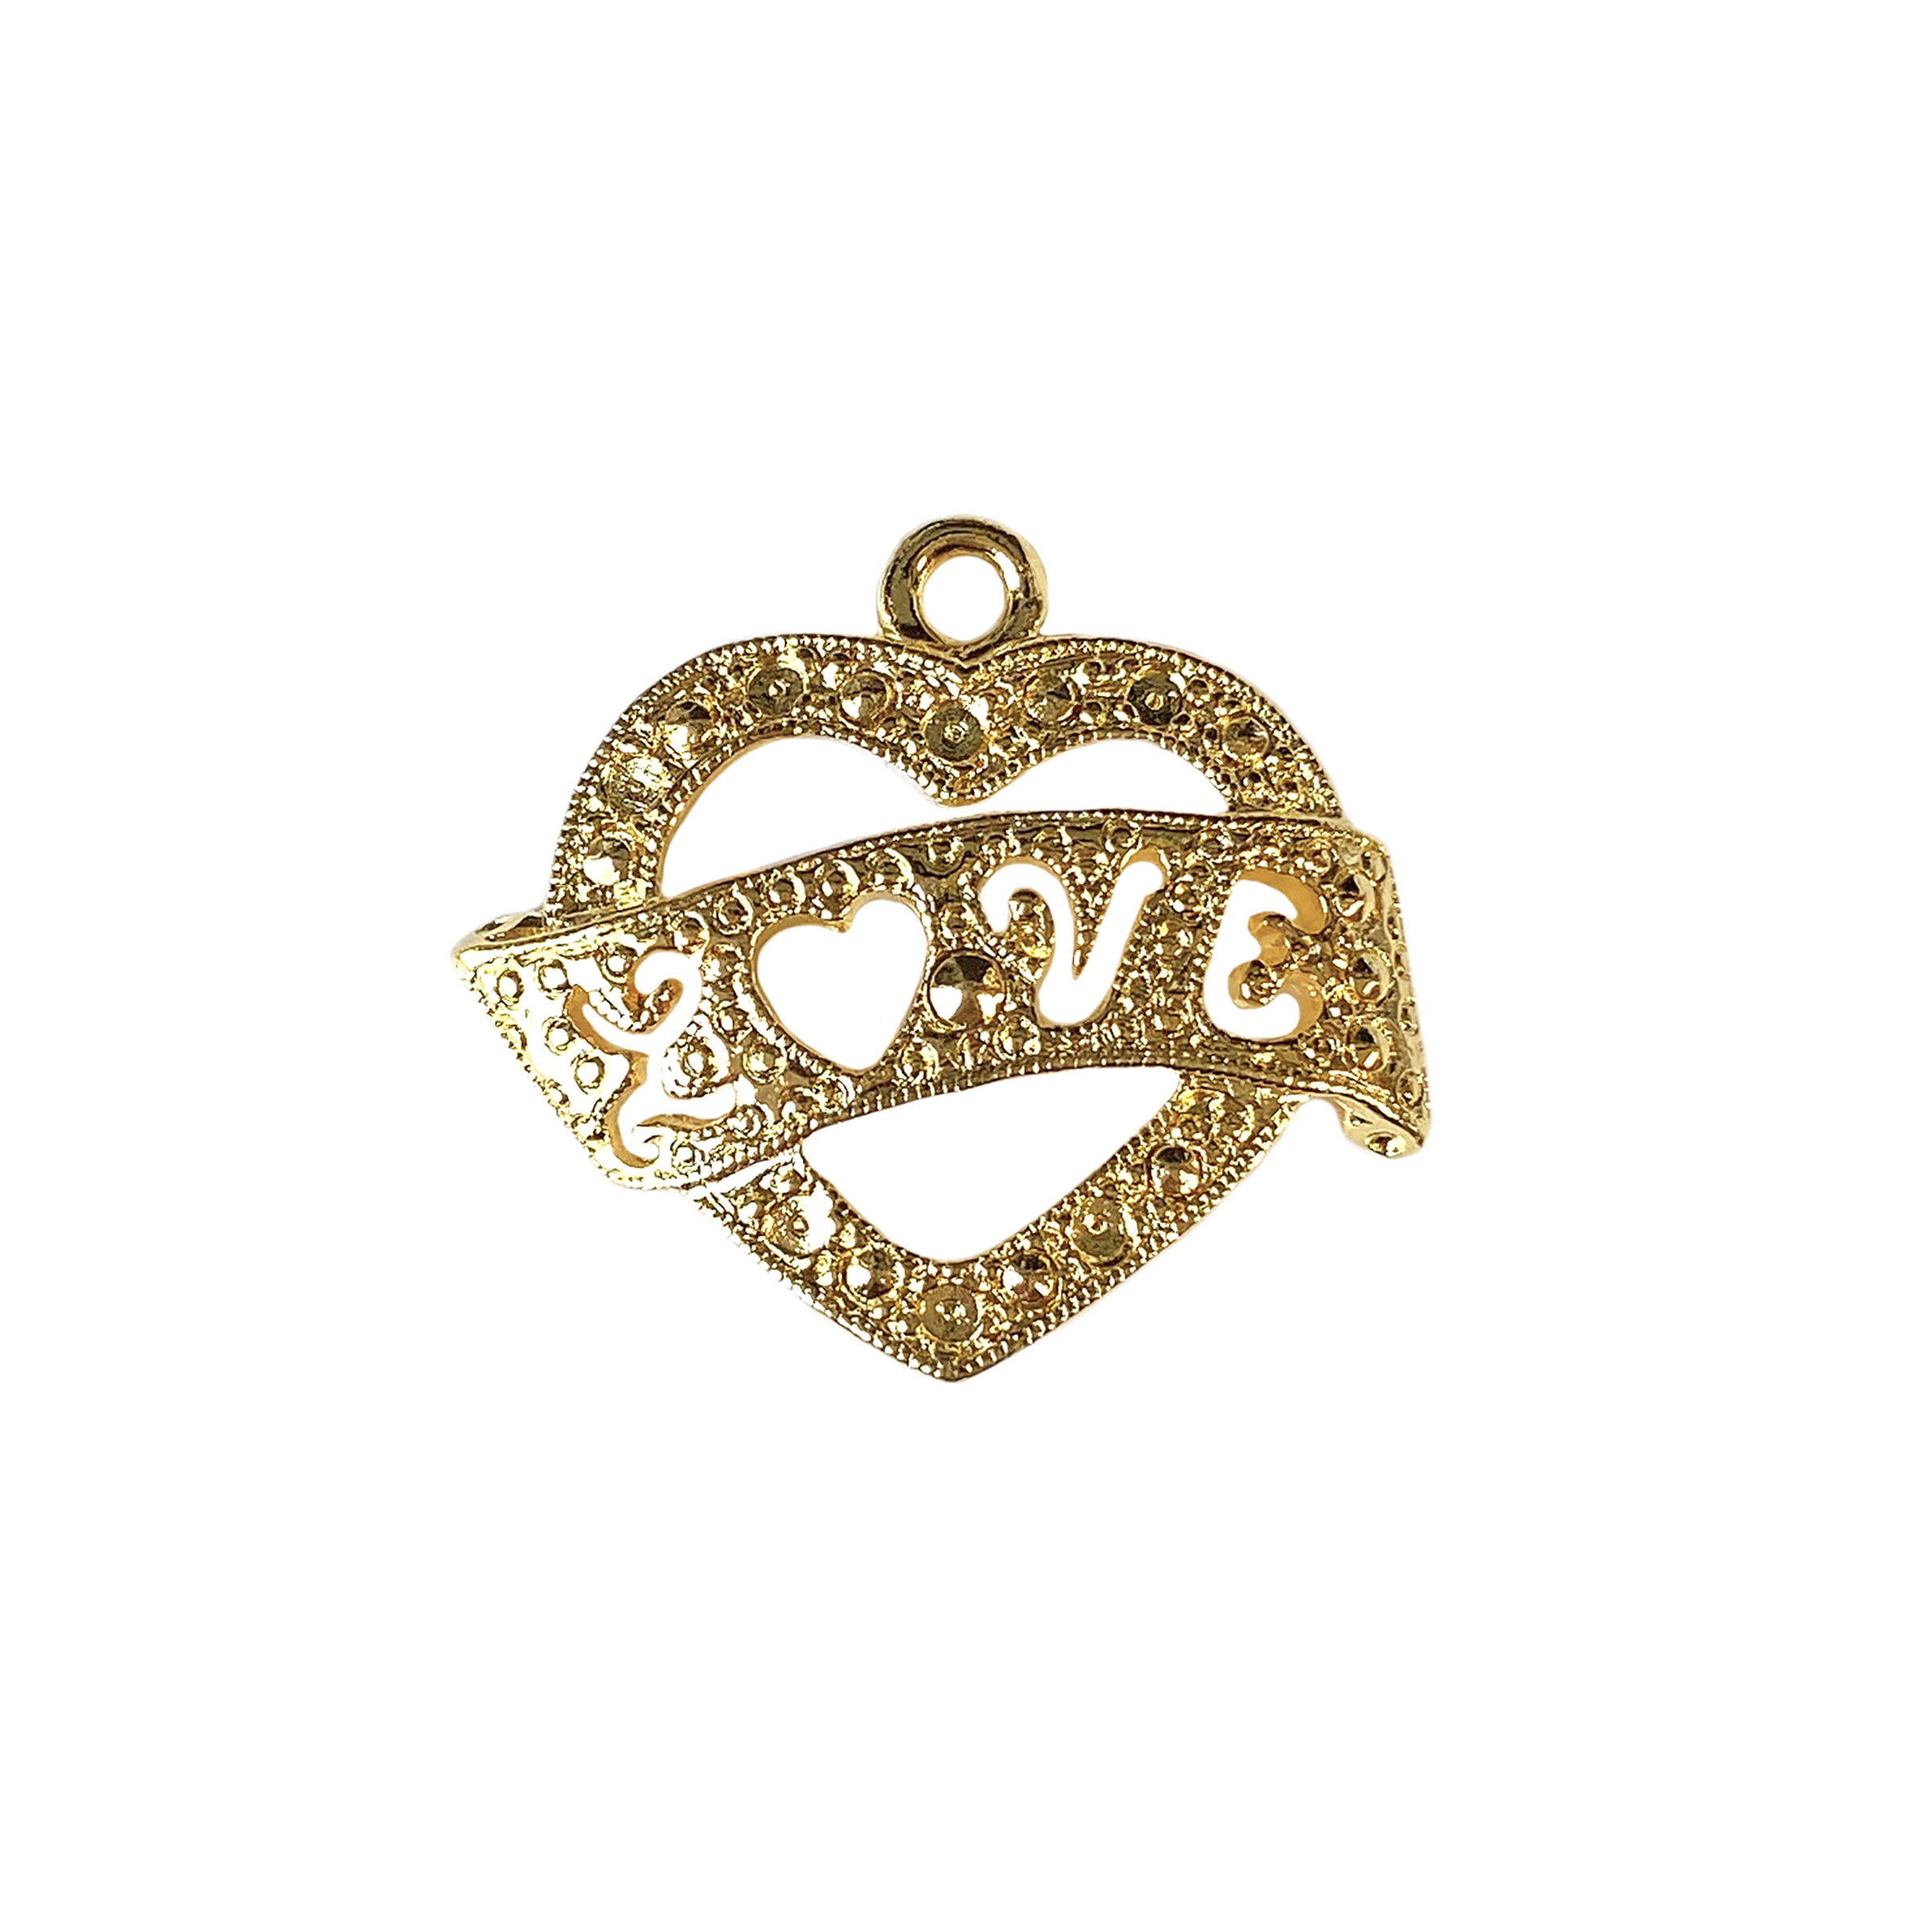 heart love banner pendant, 22K gold finish pewter, love banner, charm, pendant, gold finish, gold, heart banner pendant, pendant jewelry, 22K gold, jewelry making, vintage supplies, heart charm, 20x26mm, jewelry supplies, love heart pendant, 01627